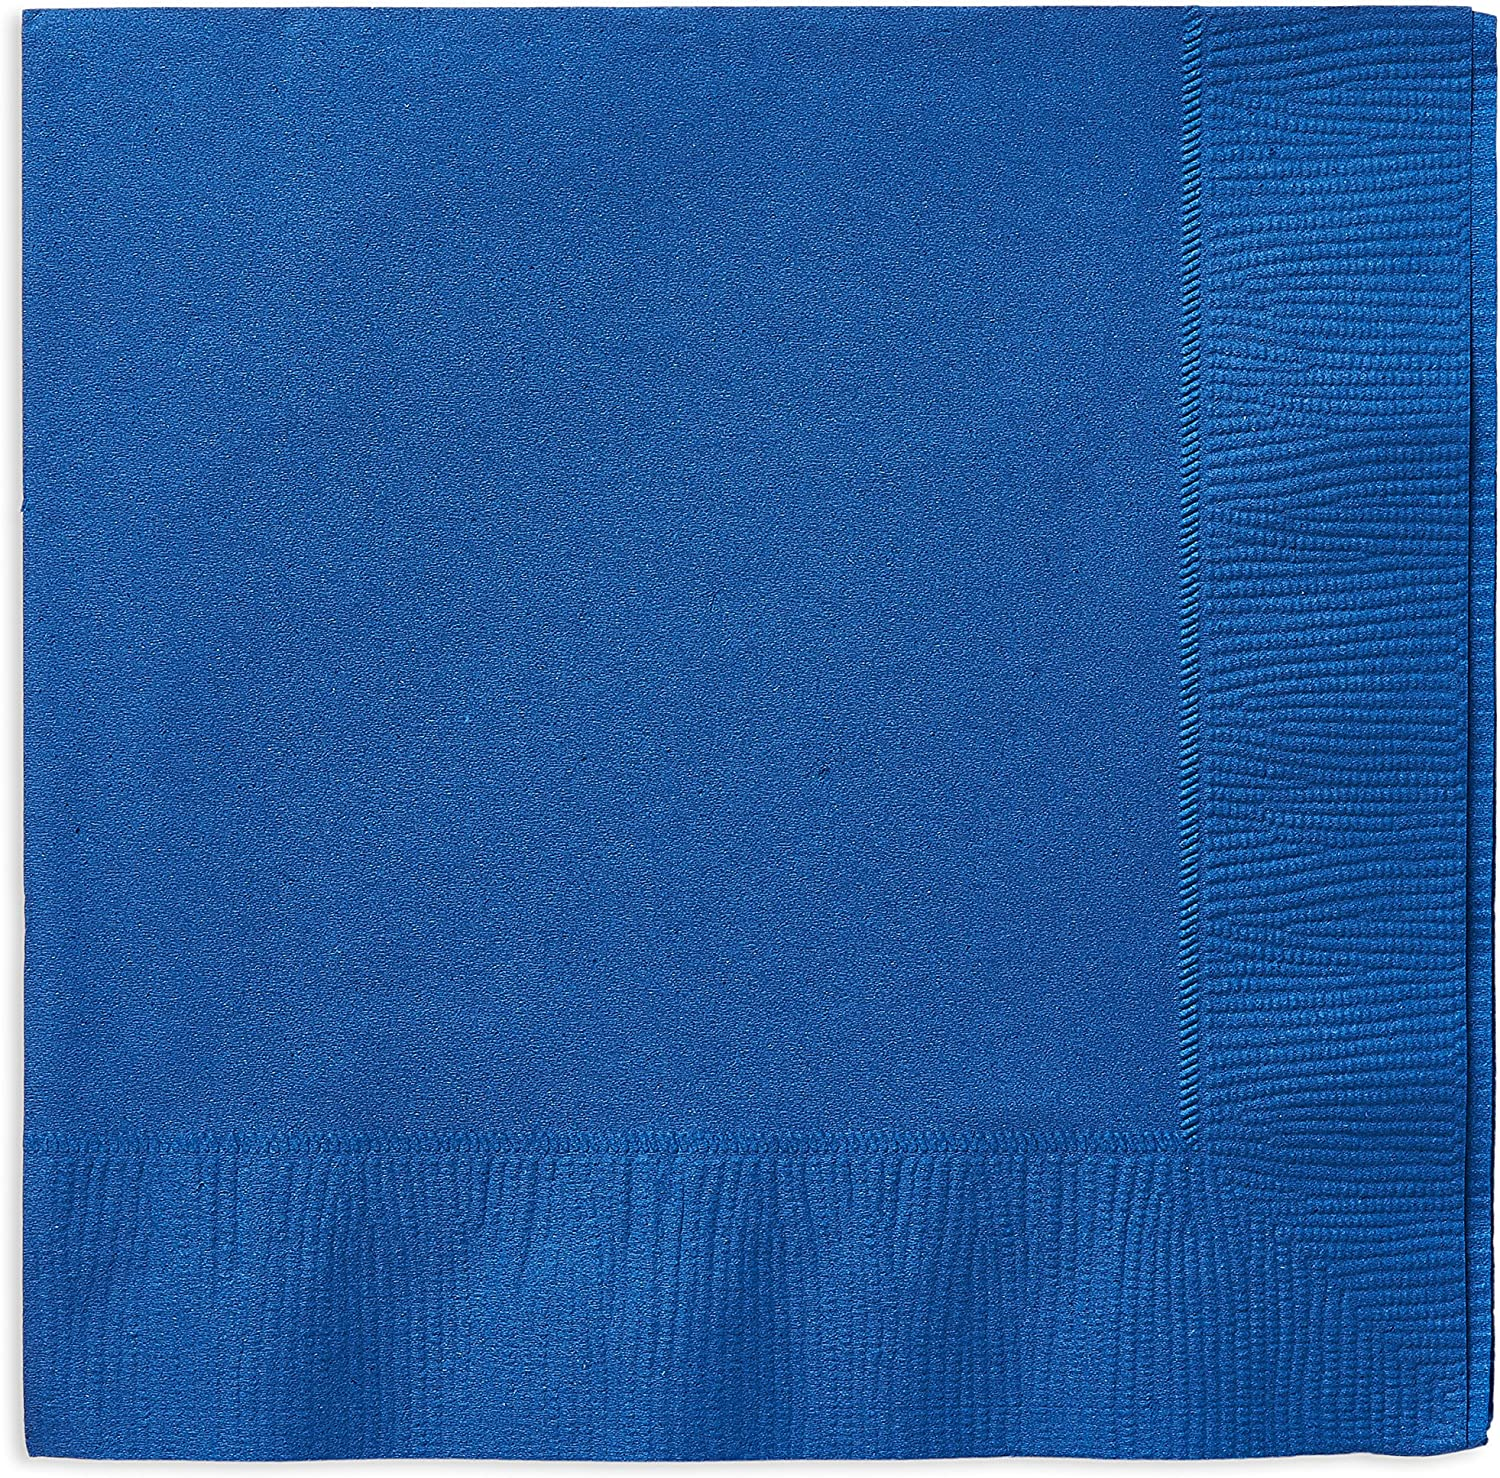 American Greetings Blue Party Supplies, Paper Lunch Napkins (50-Count)